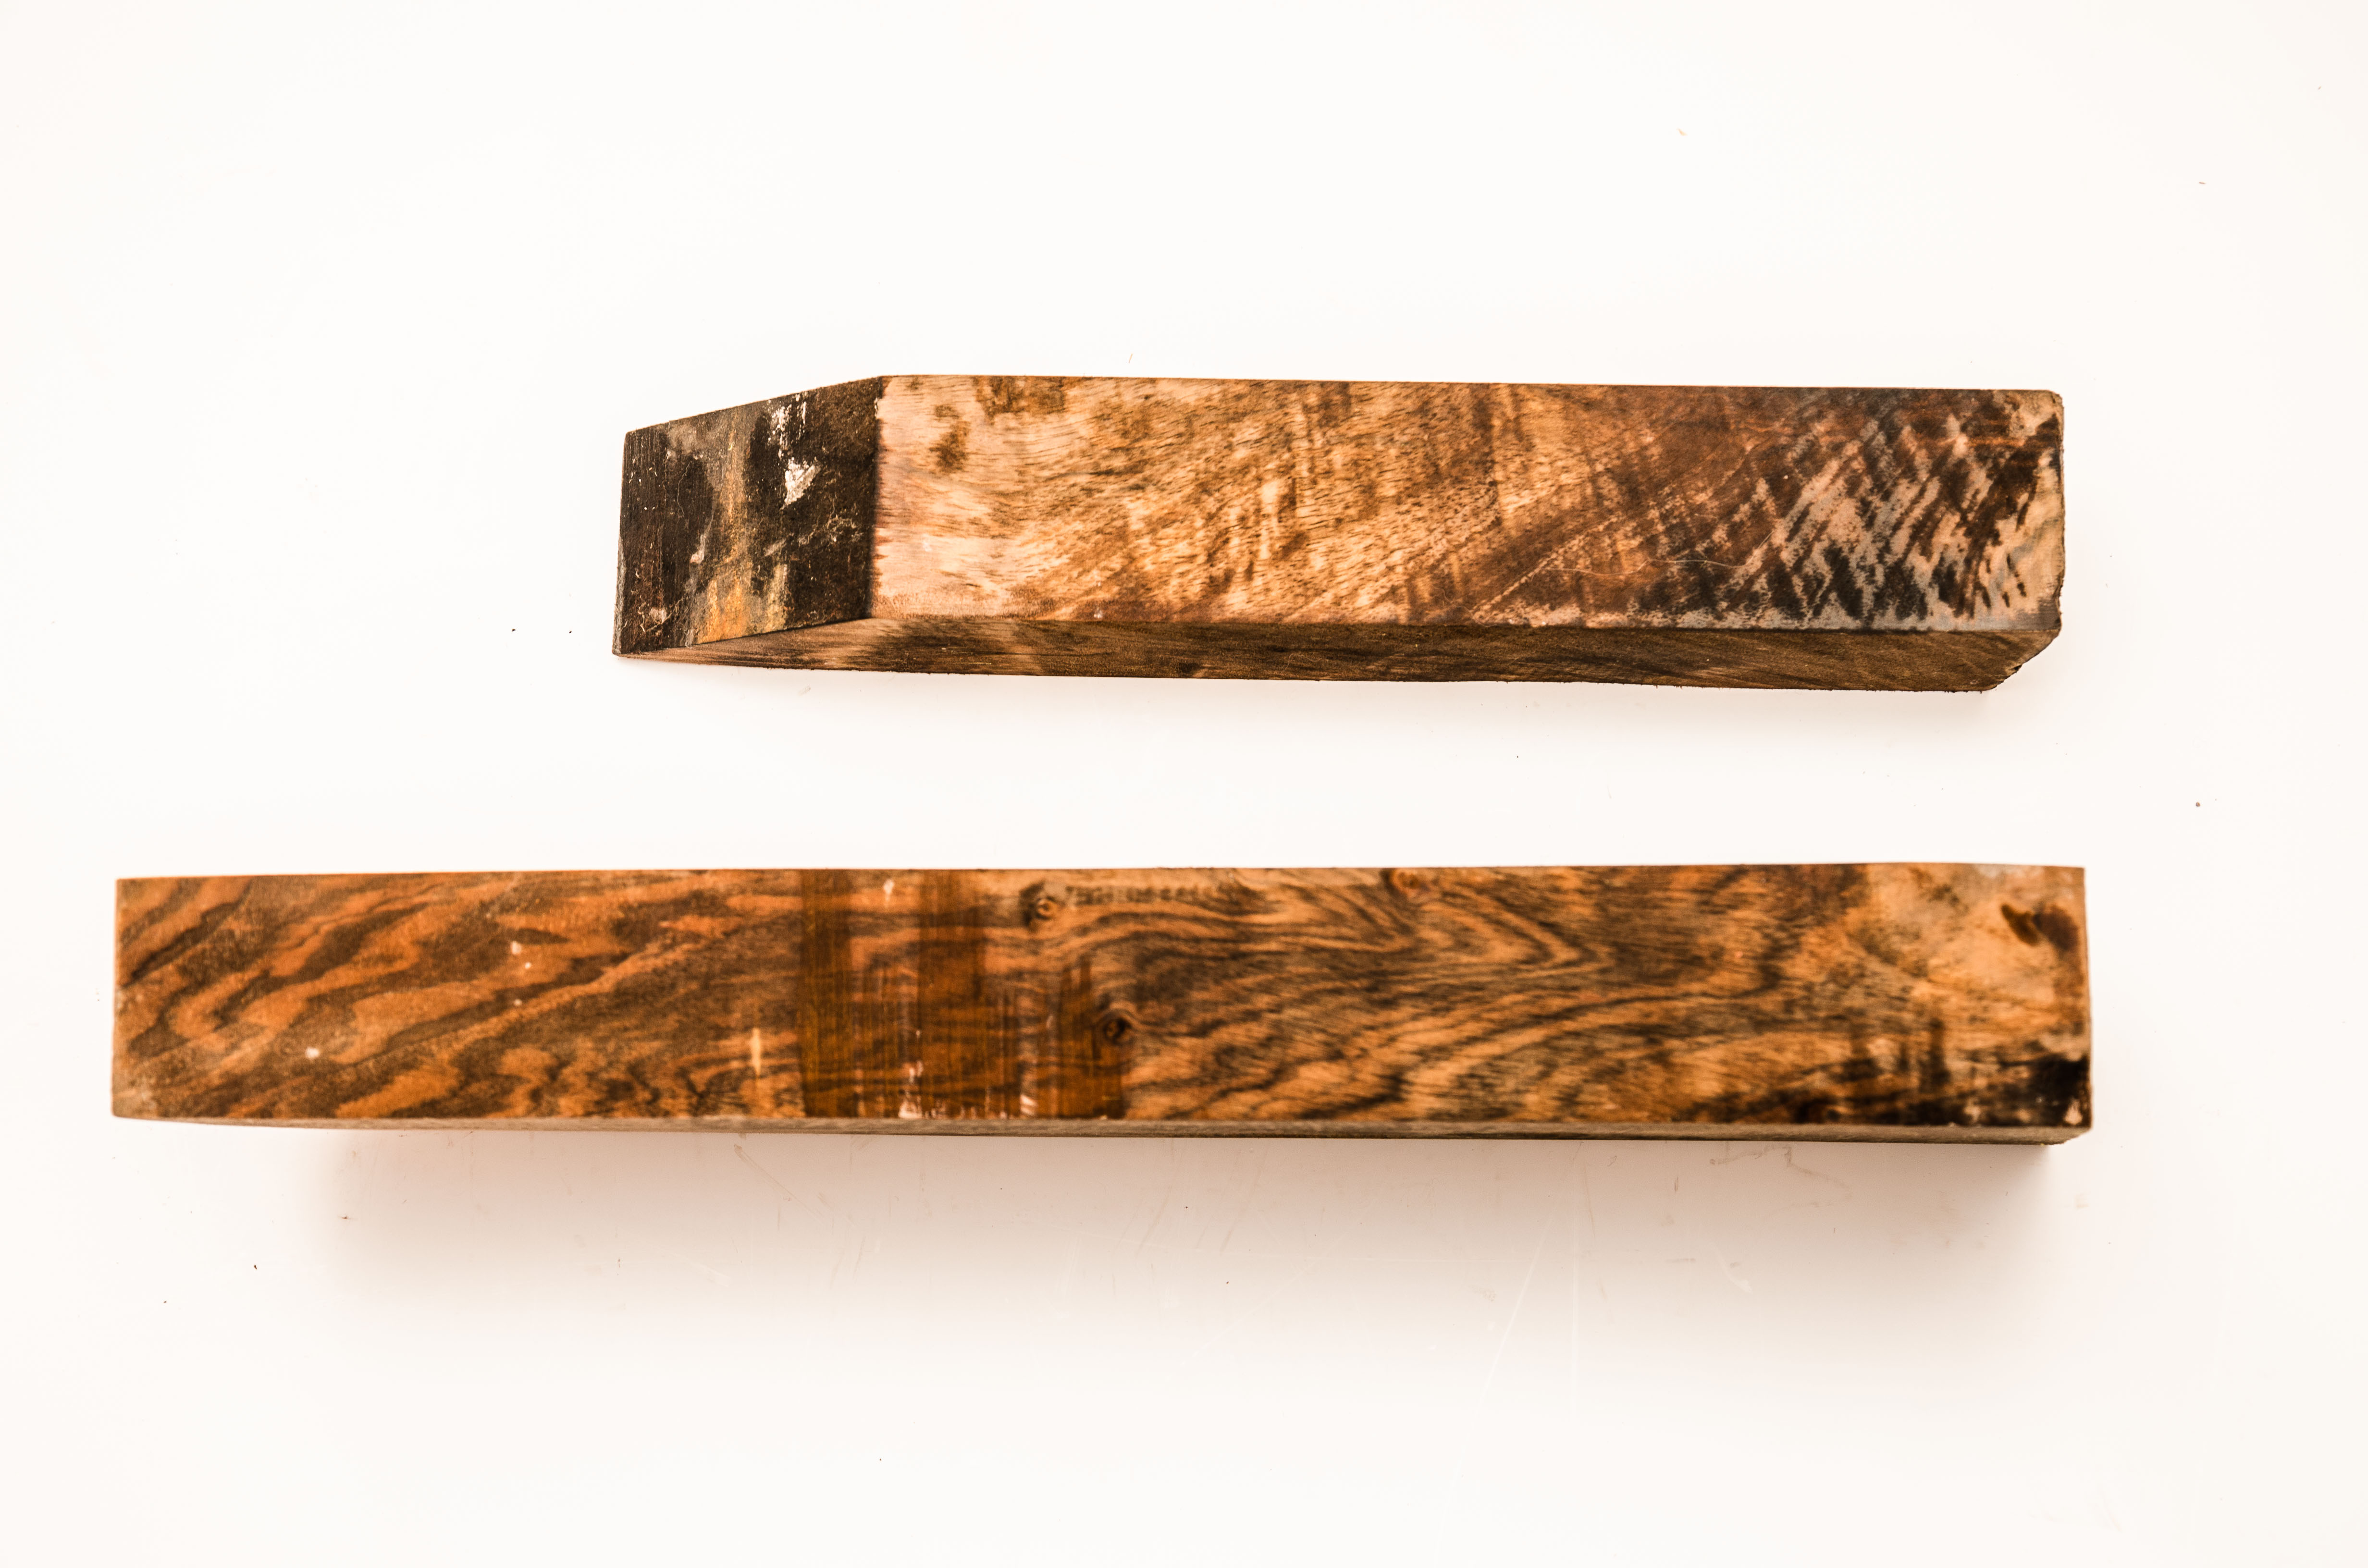 walnut_stock_blanks_for_guns_and_rifles-0378